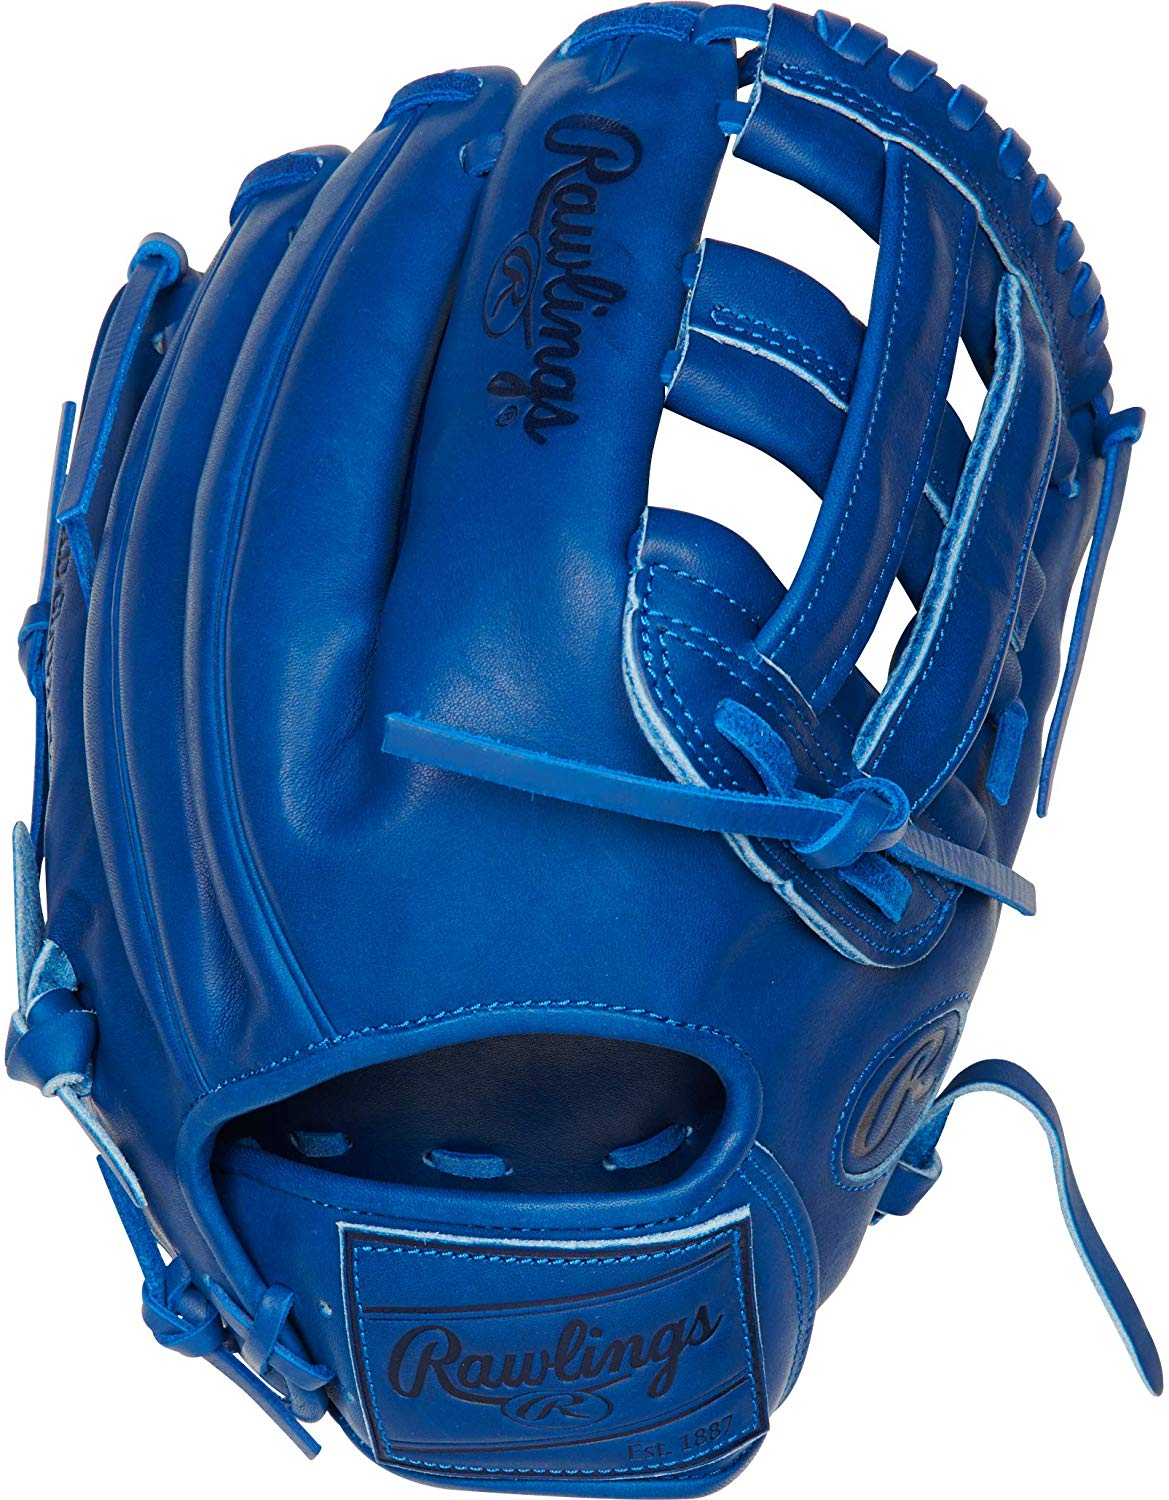 rawlings-pro-label-royal-baseball-glove-12-25-right-hand-throw PROKB17-6R-RightHandThrow  083321691416 <p>12.25 pattern Limited Edition Kris Bryant Pattern Indent Stamping On Shell